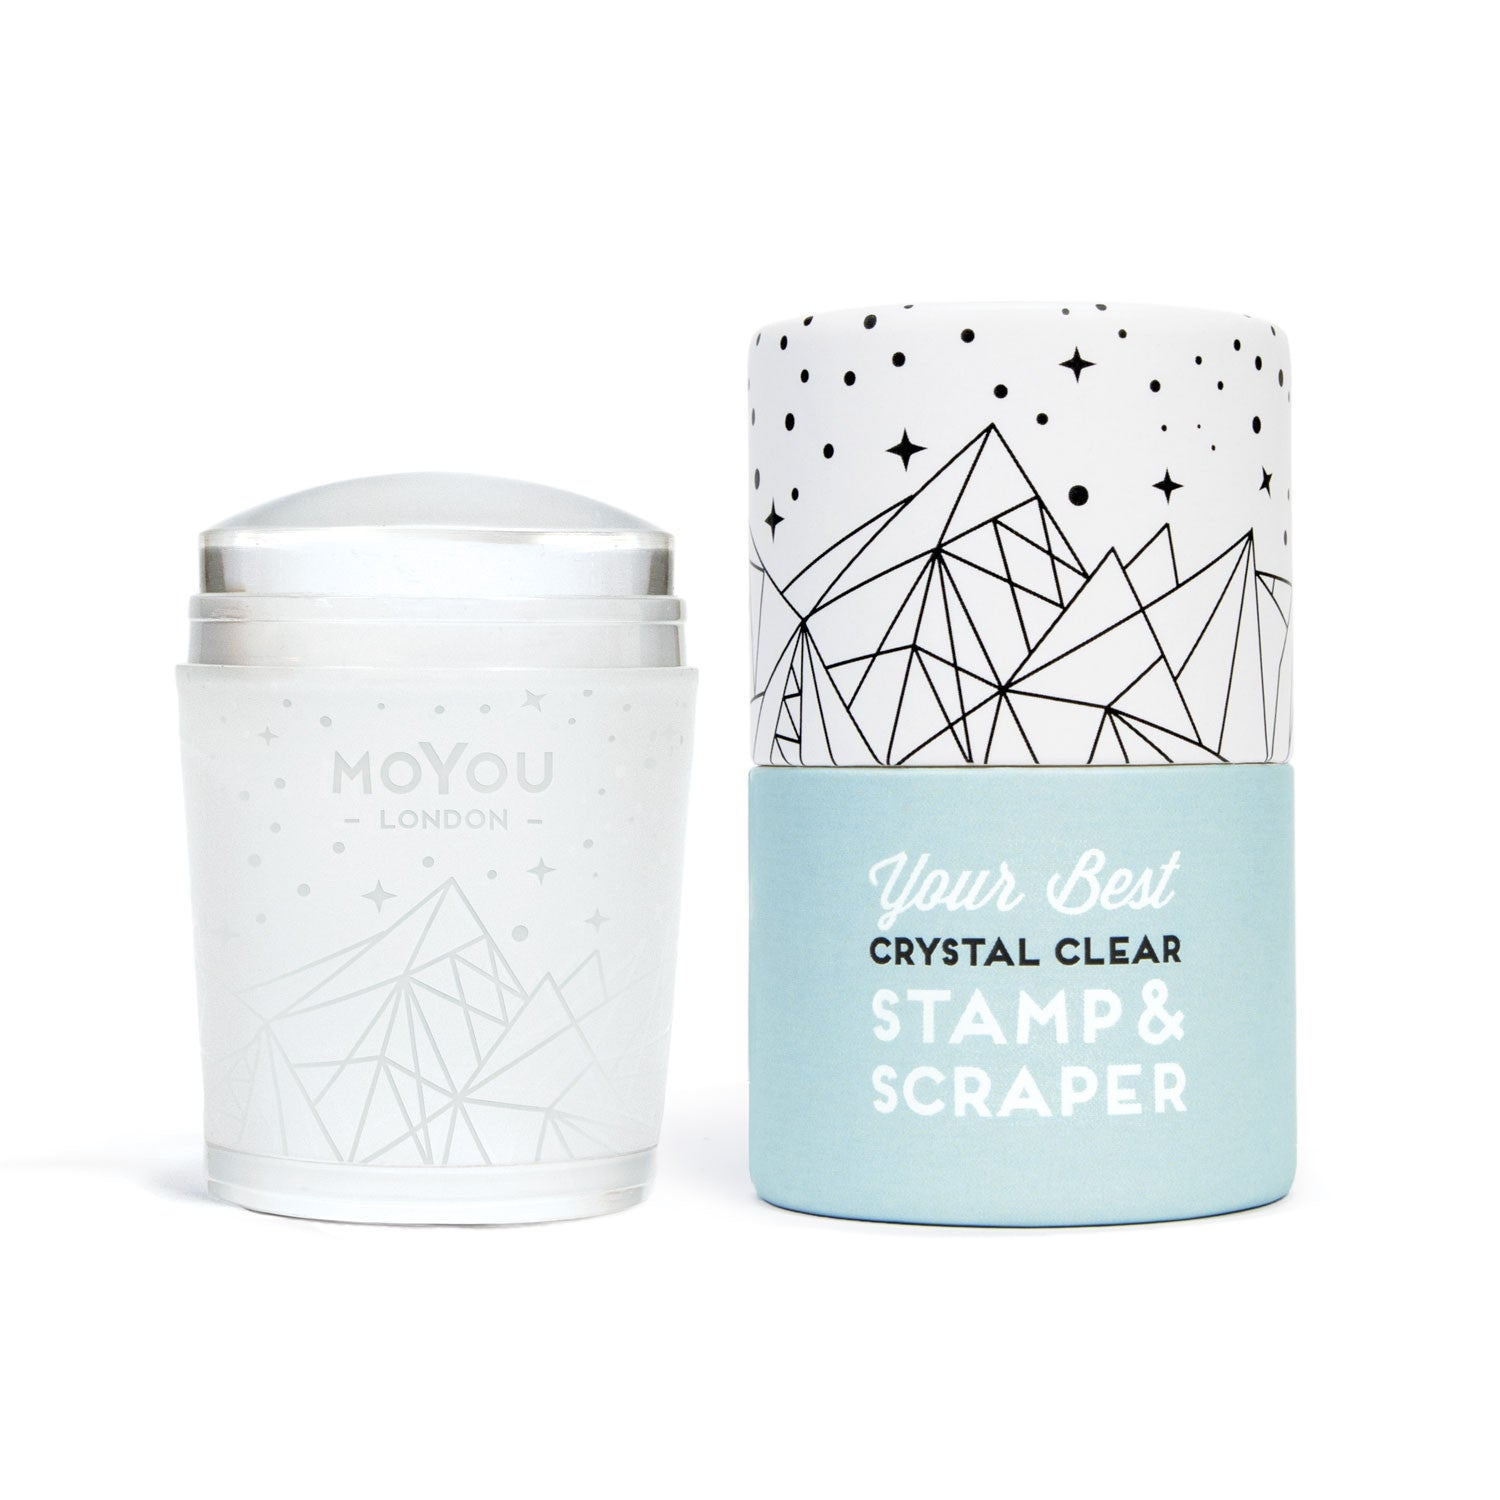 Crystal Clear Stamp & Scraper